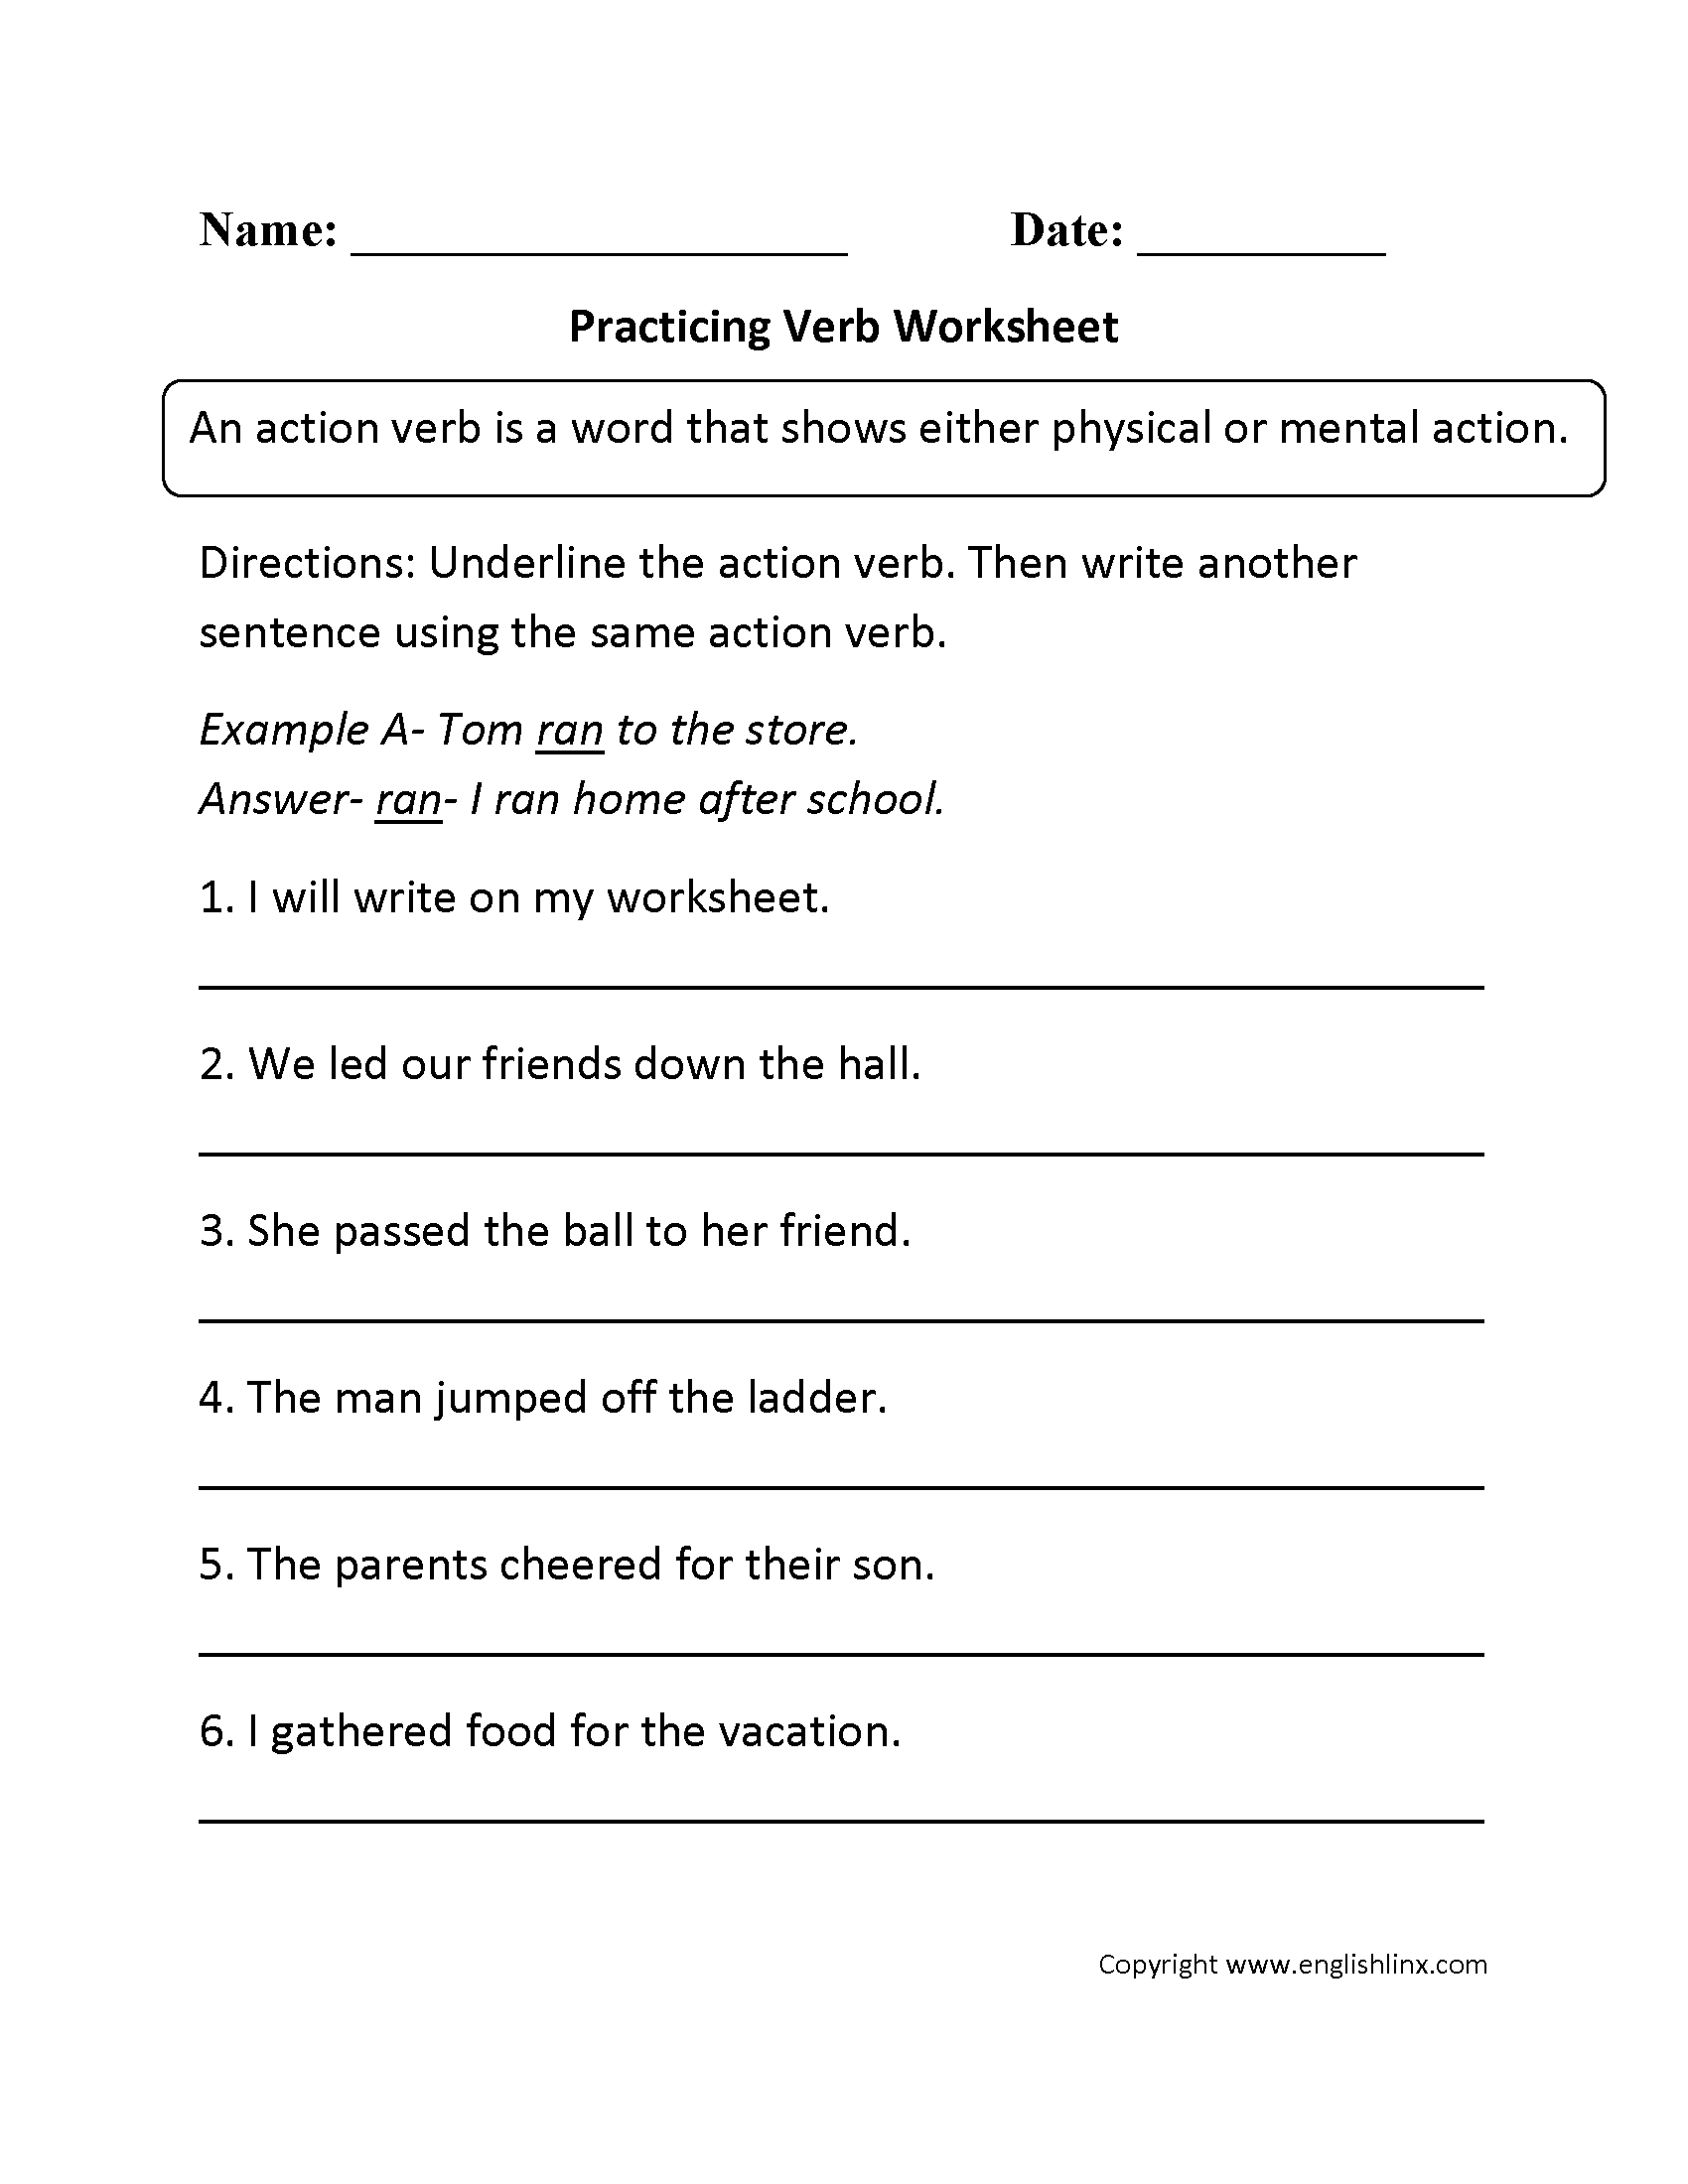 Worksheet Action And Linking Verbs Worksheet Worksheet